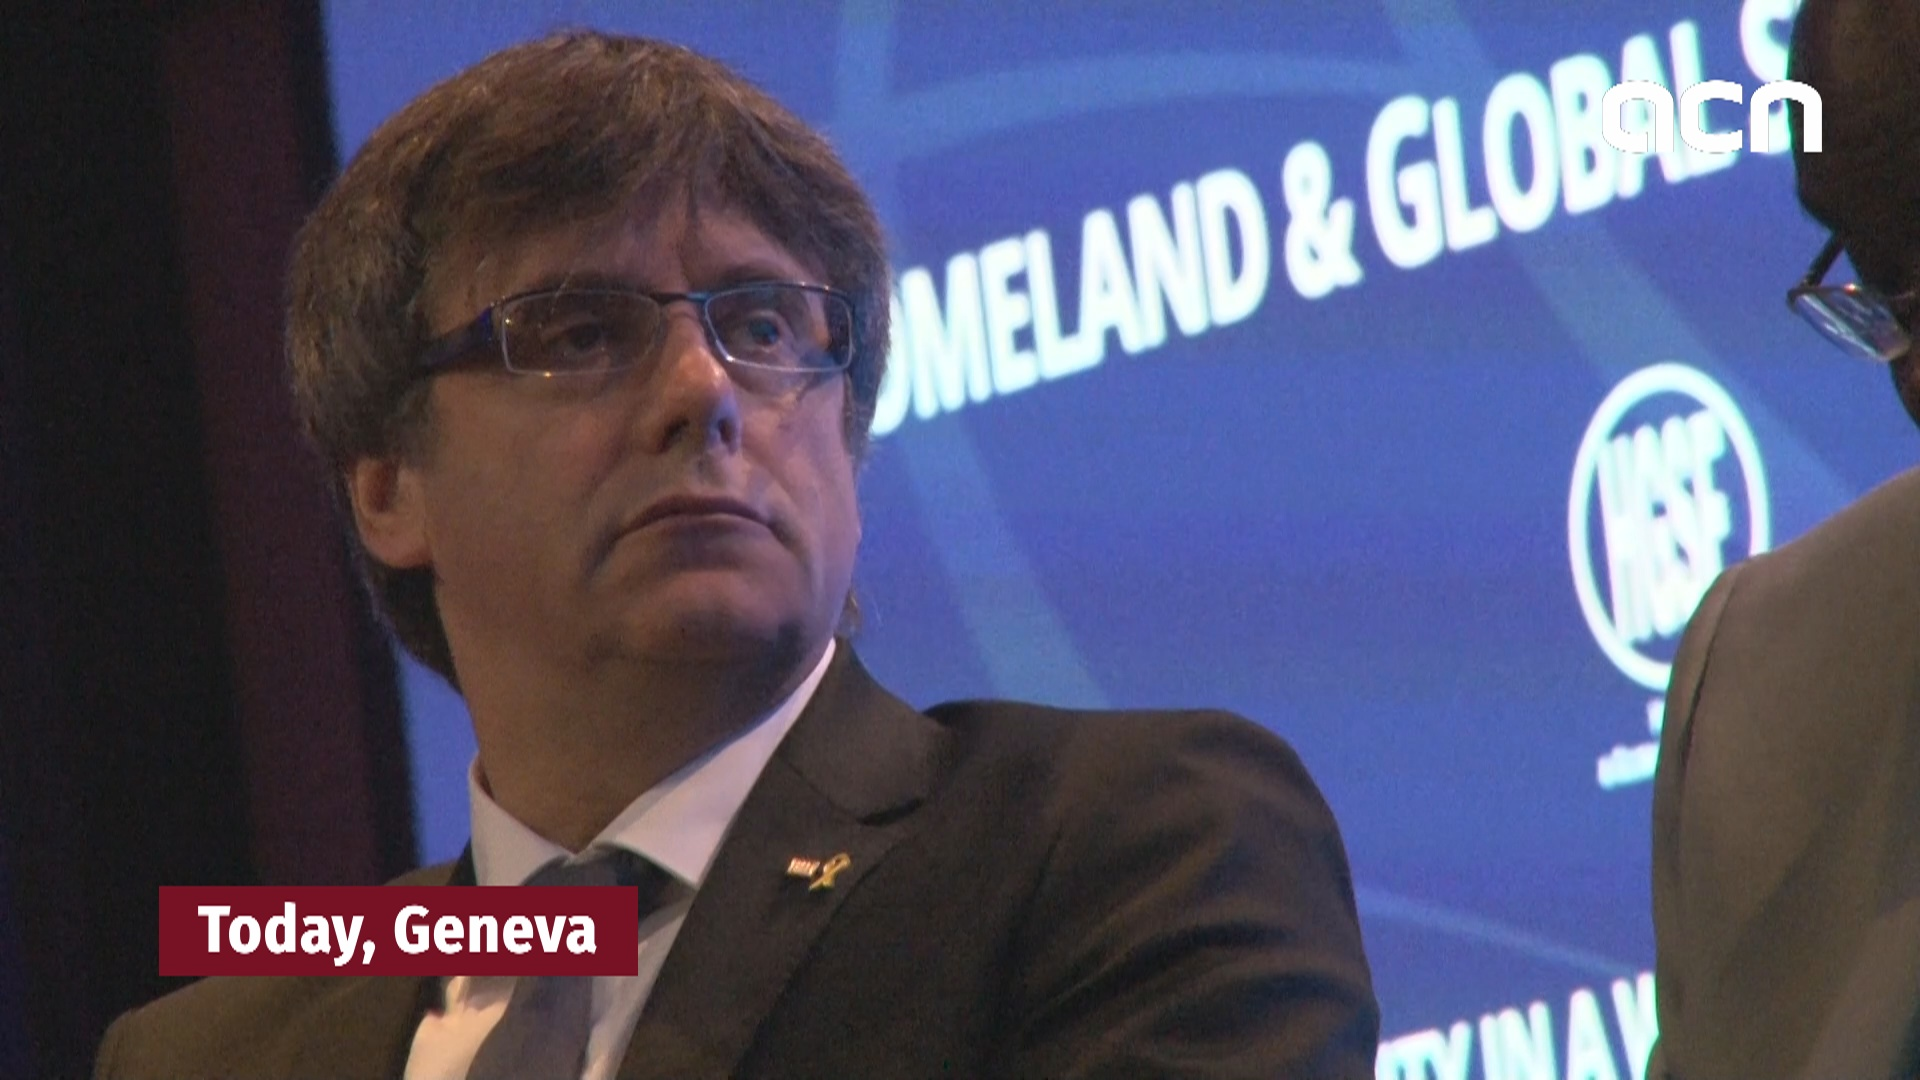 Puigdemont calls right to self-determination 'a tool for peace' in Geneva